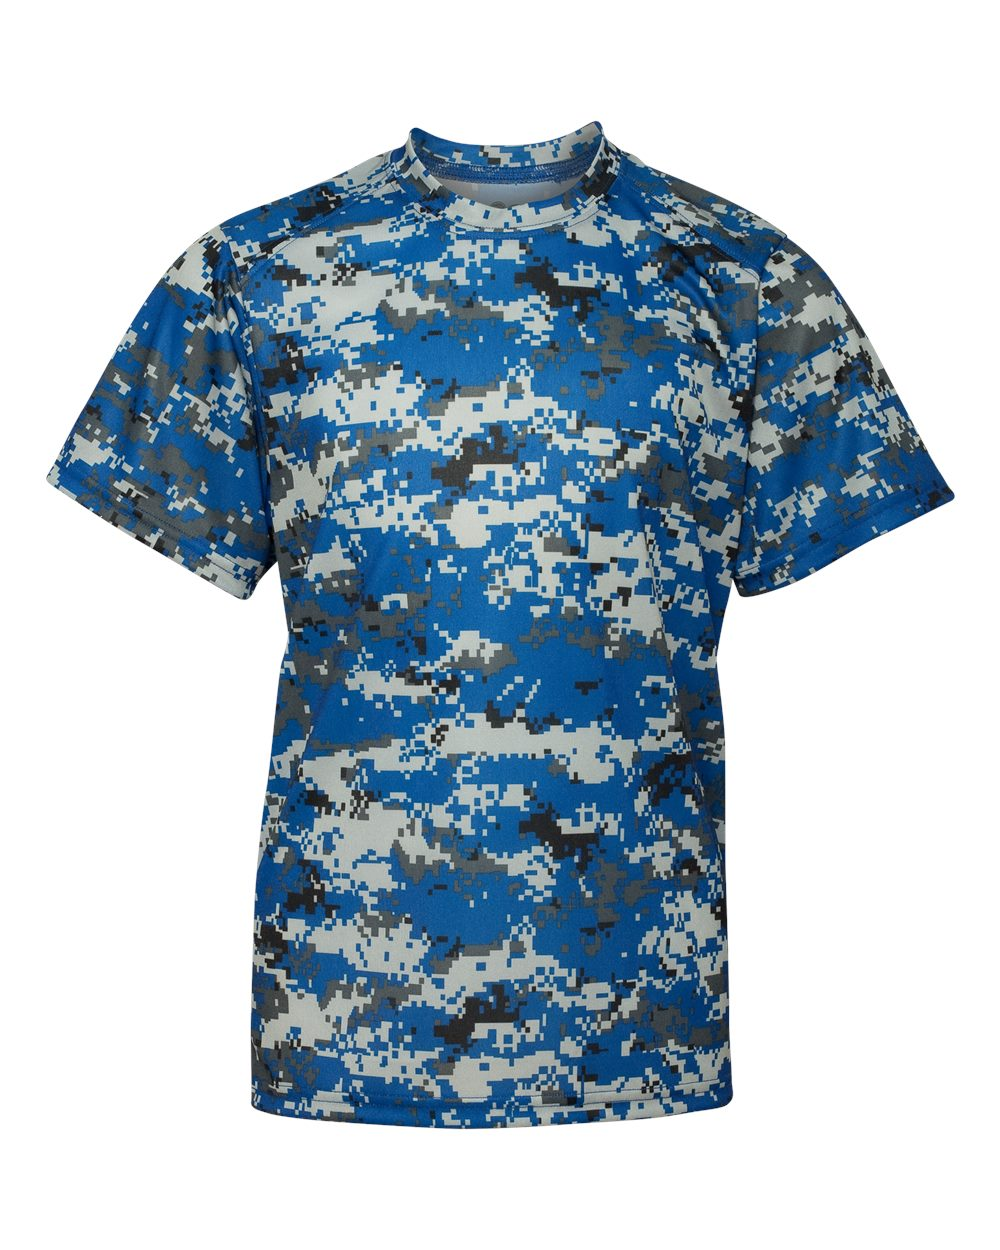 89f589631 Customize youth toddler camo tshirts